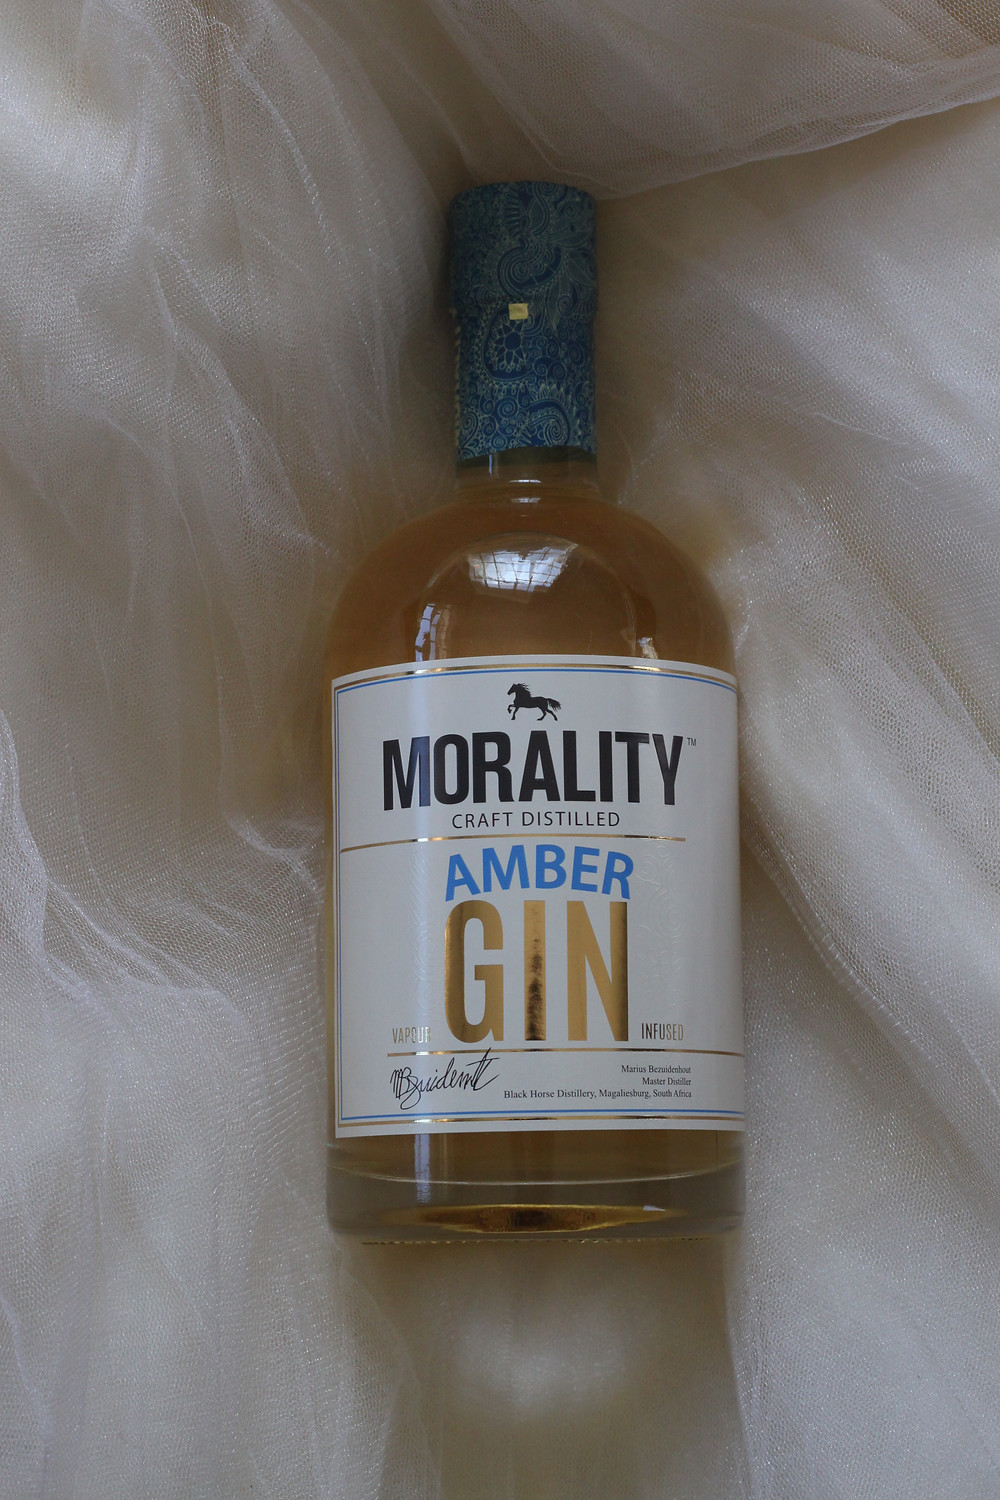 Morality gin